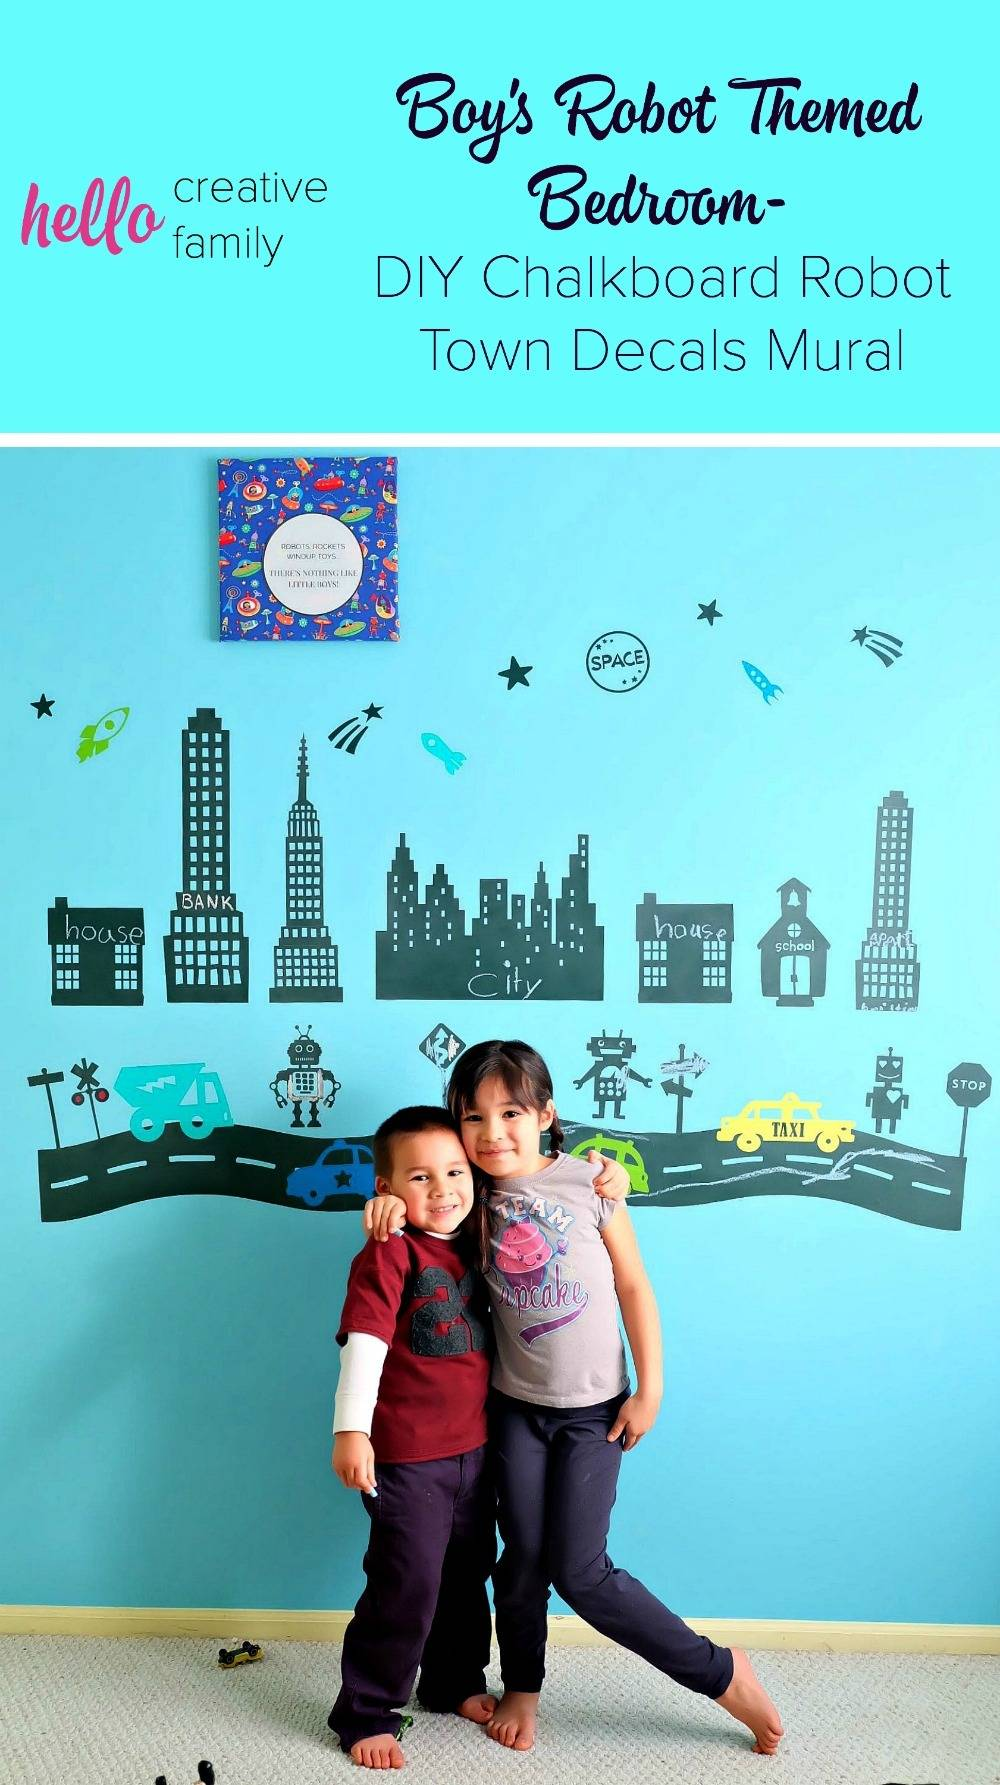 creative ideas for wall decals